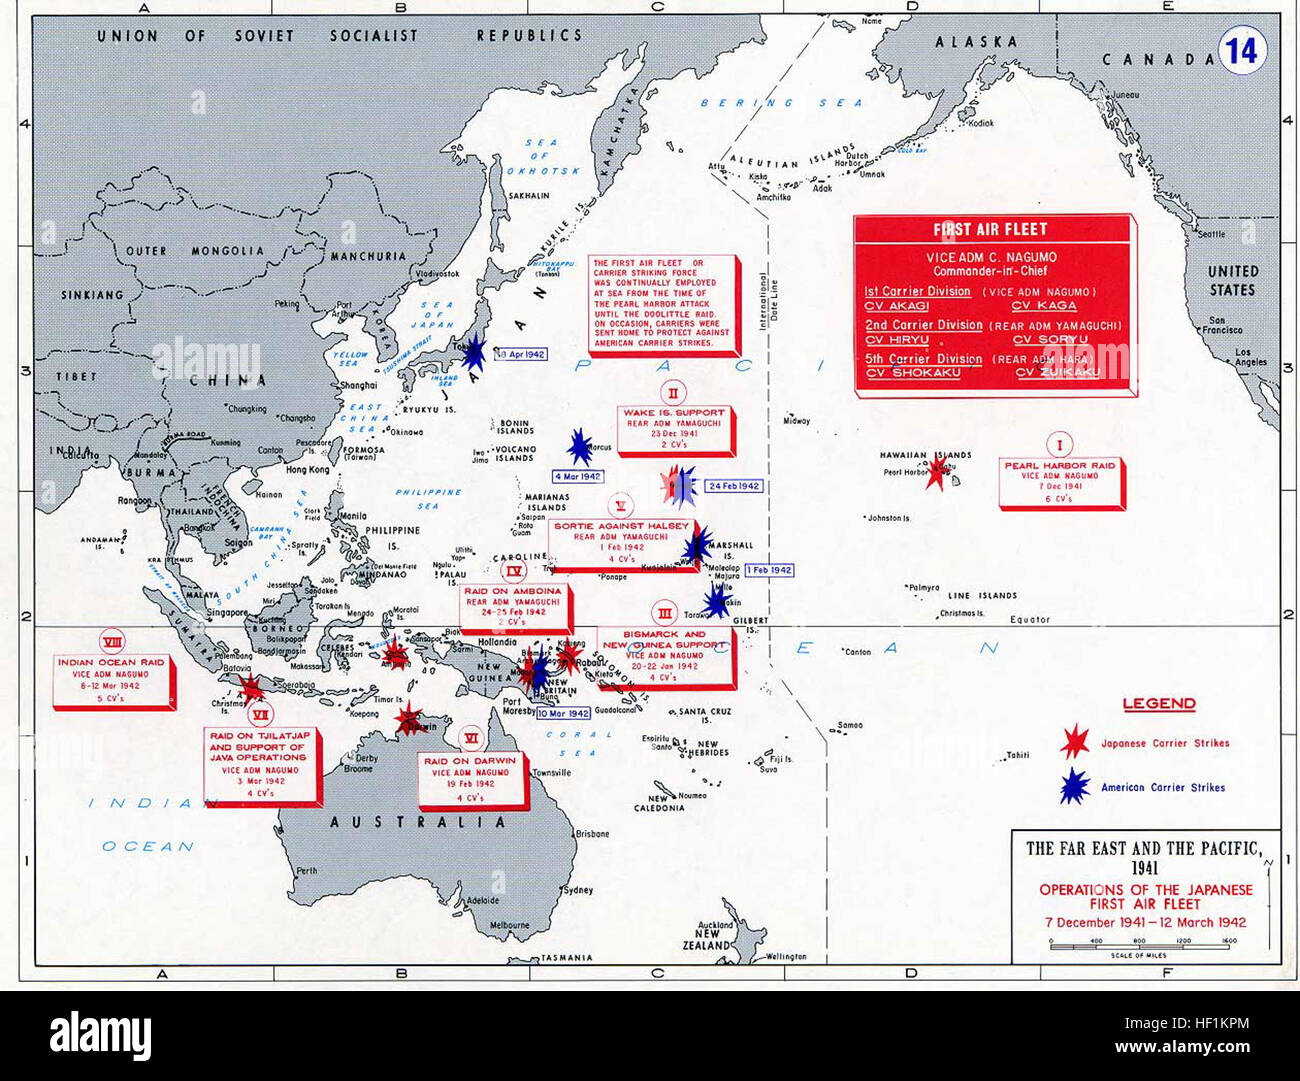 Pacific War - Japanese Carrier OP 1941-42 - Map Stock Photo ...